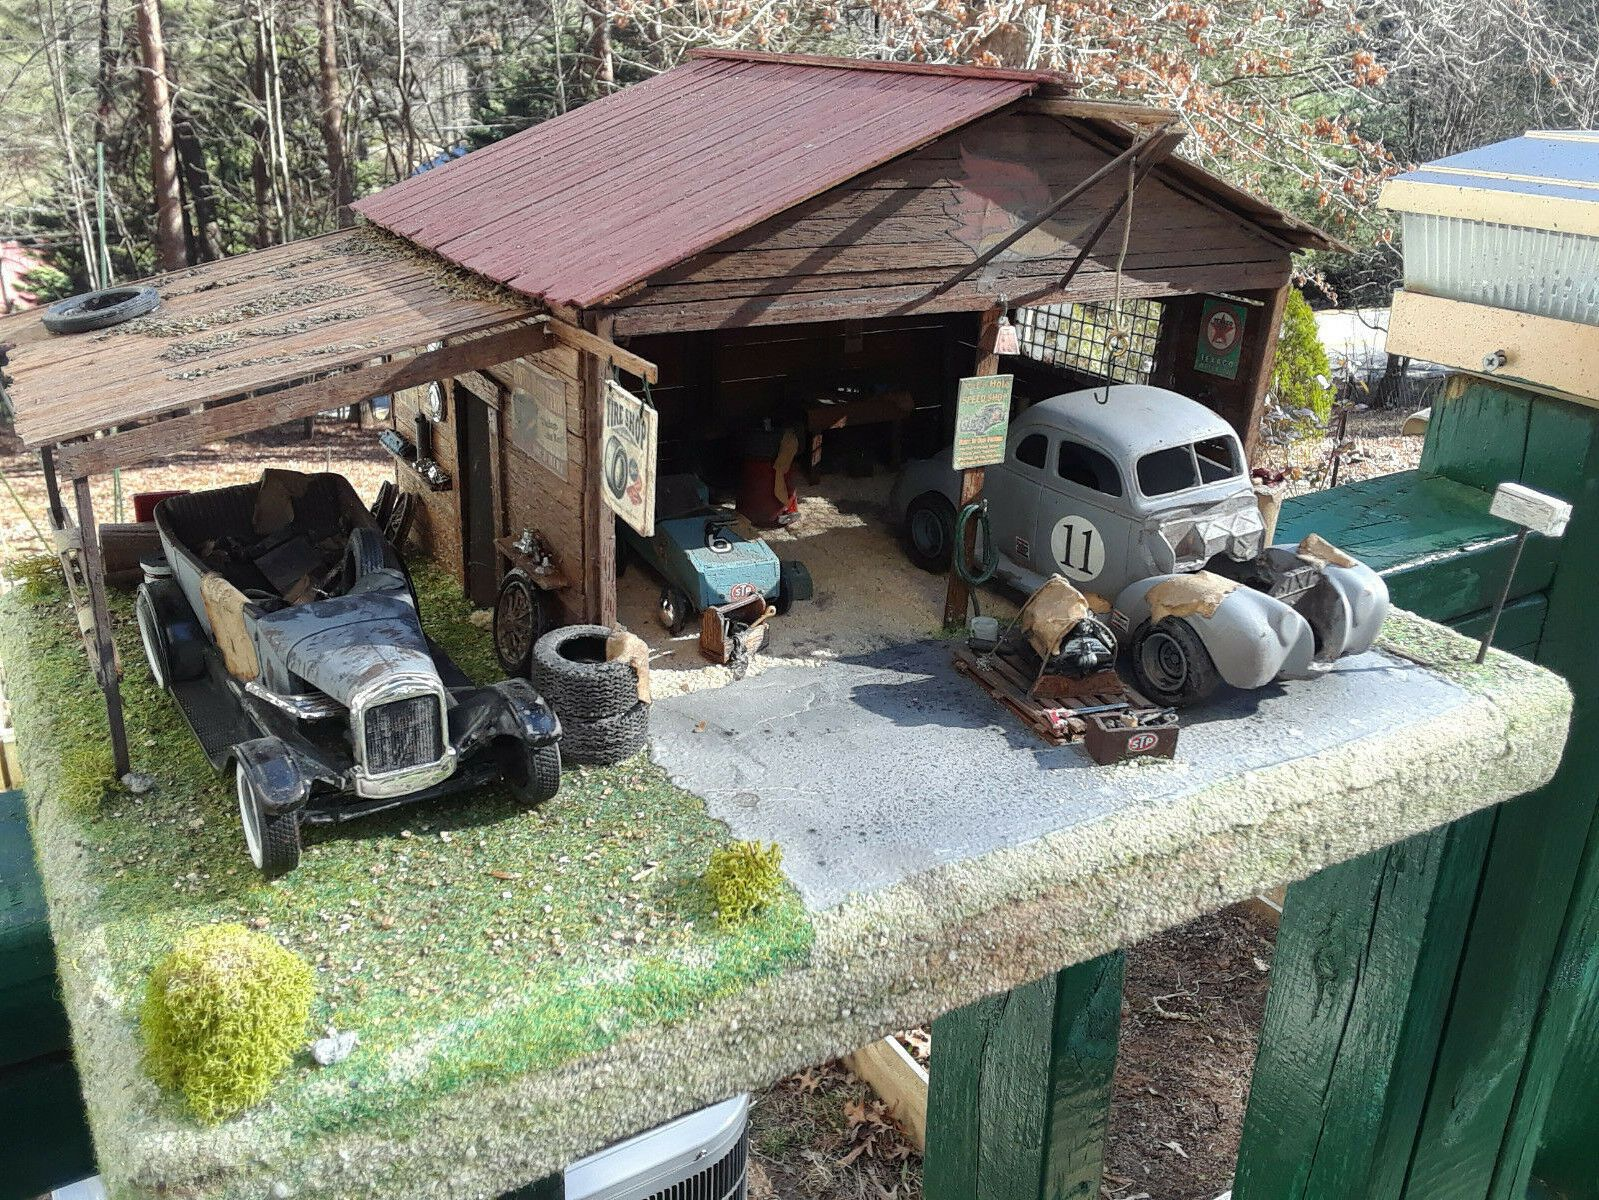 1 25 Model Car Diorama Junkyard Lot Parts Kits Ebay Car Model Model Cars Kits Plastic Model Cars